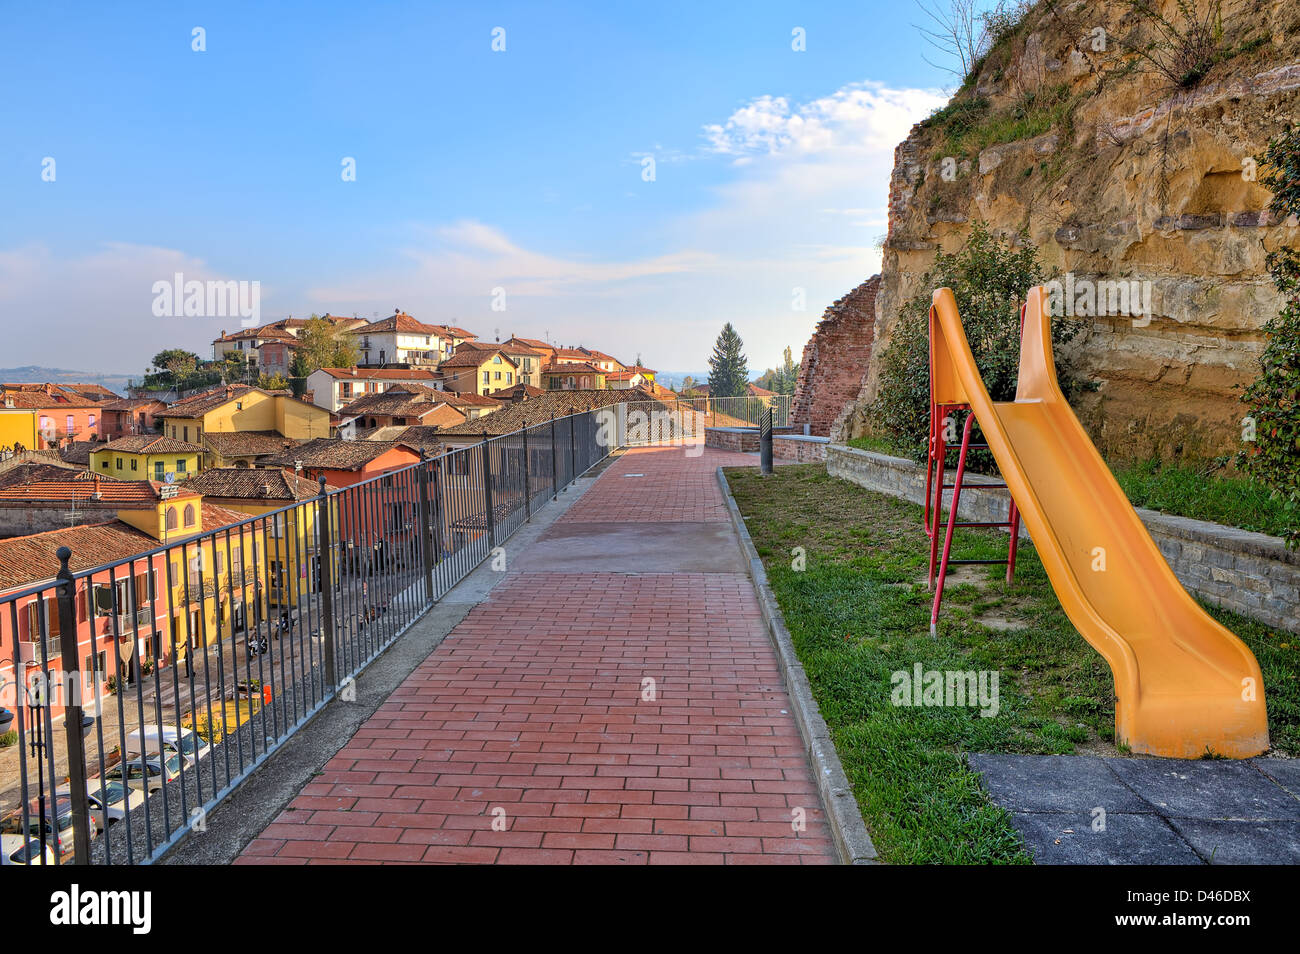 Yellow children slide on public playground in small town of Diano D'Alba in Piedmont, Northern Italy. - Stock Image